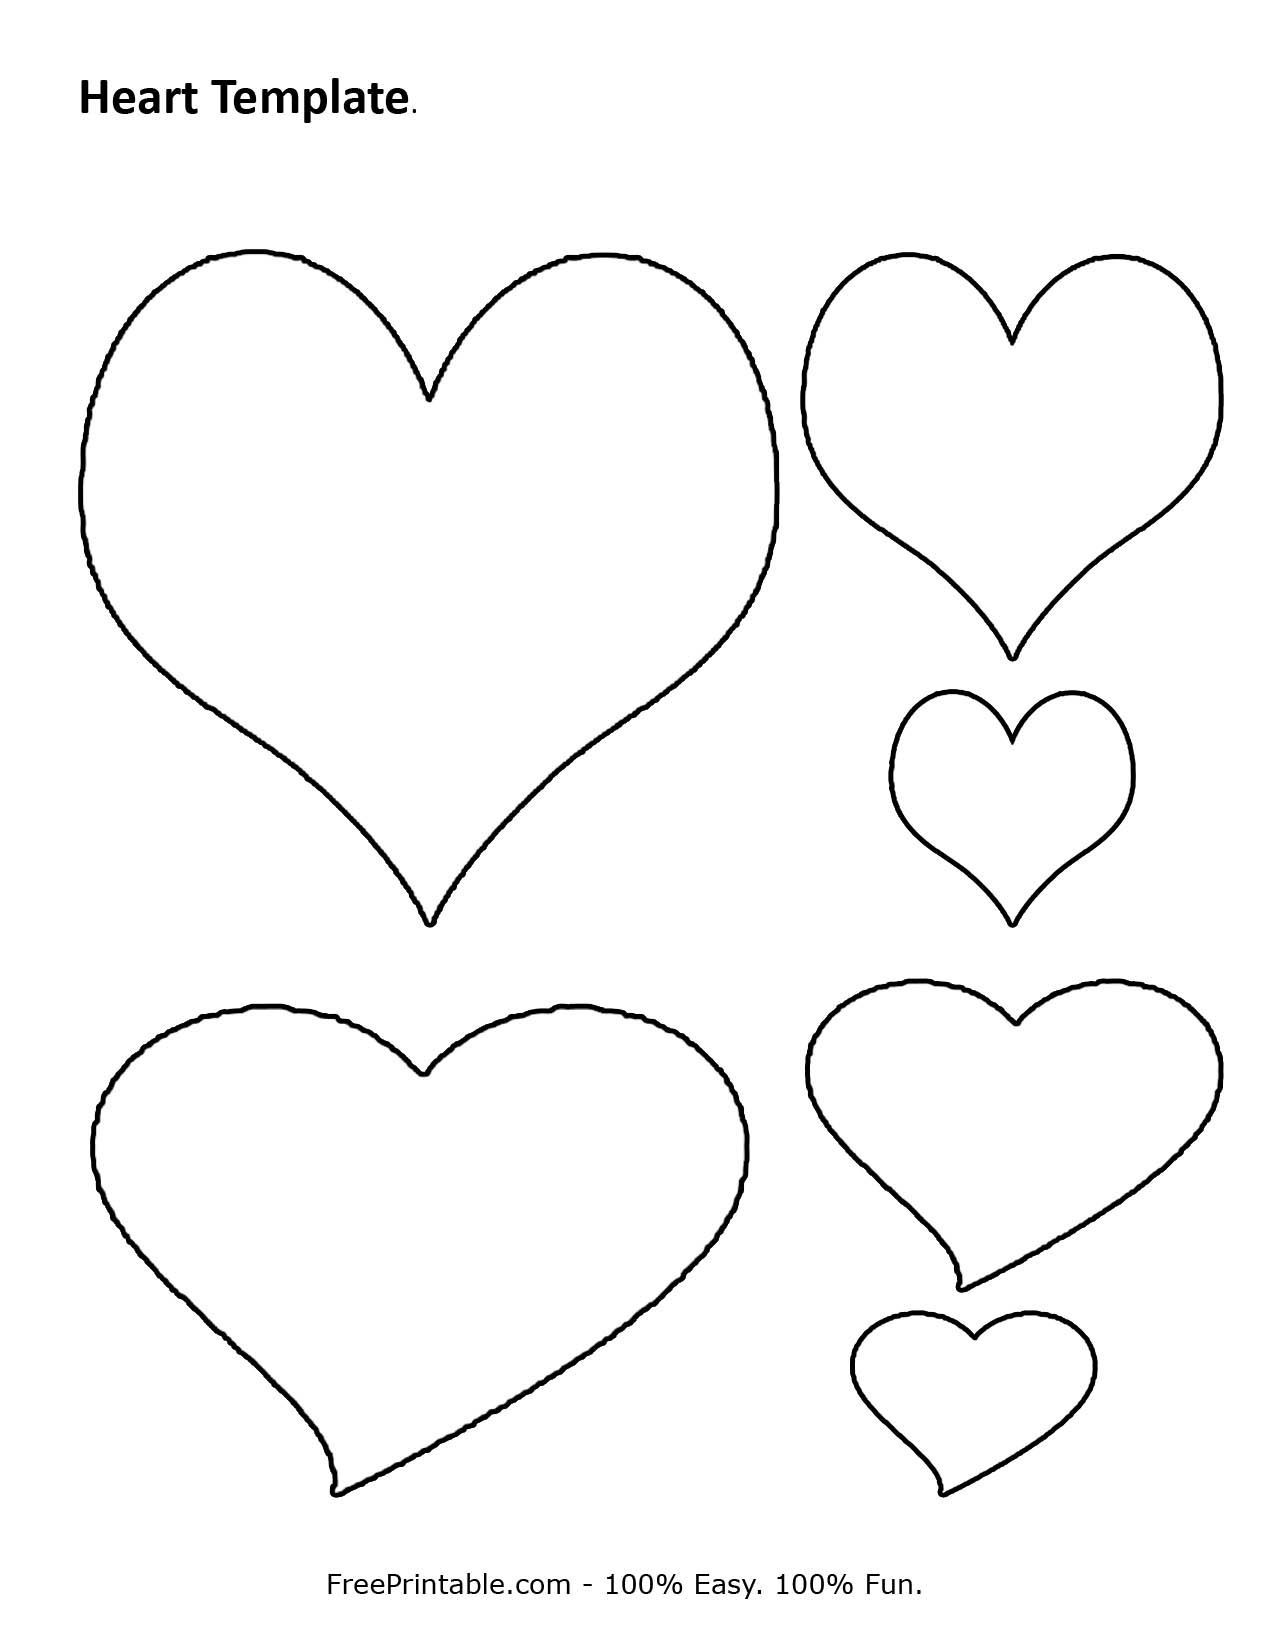 Free Printable Heart Template | Cupid Has A Heart On | Pinterest - Free Printable Heart Designs